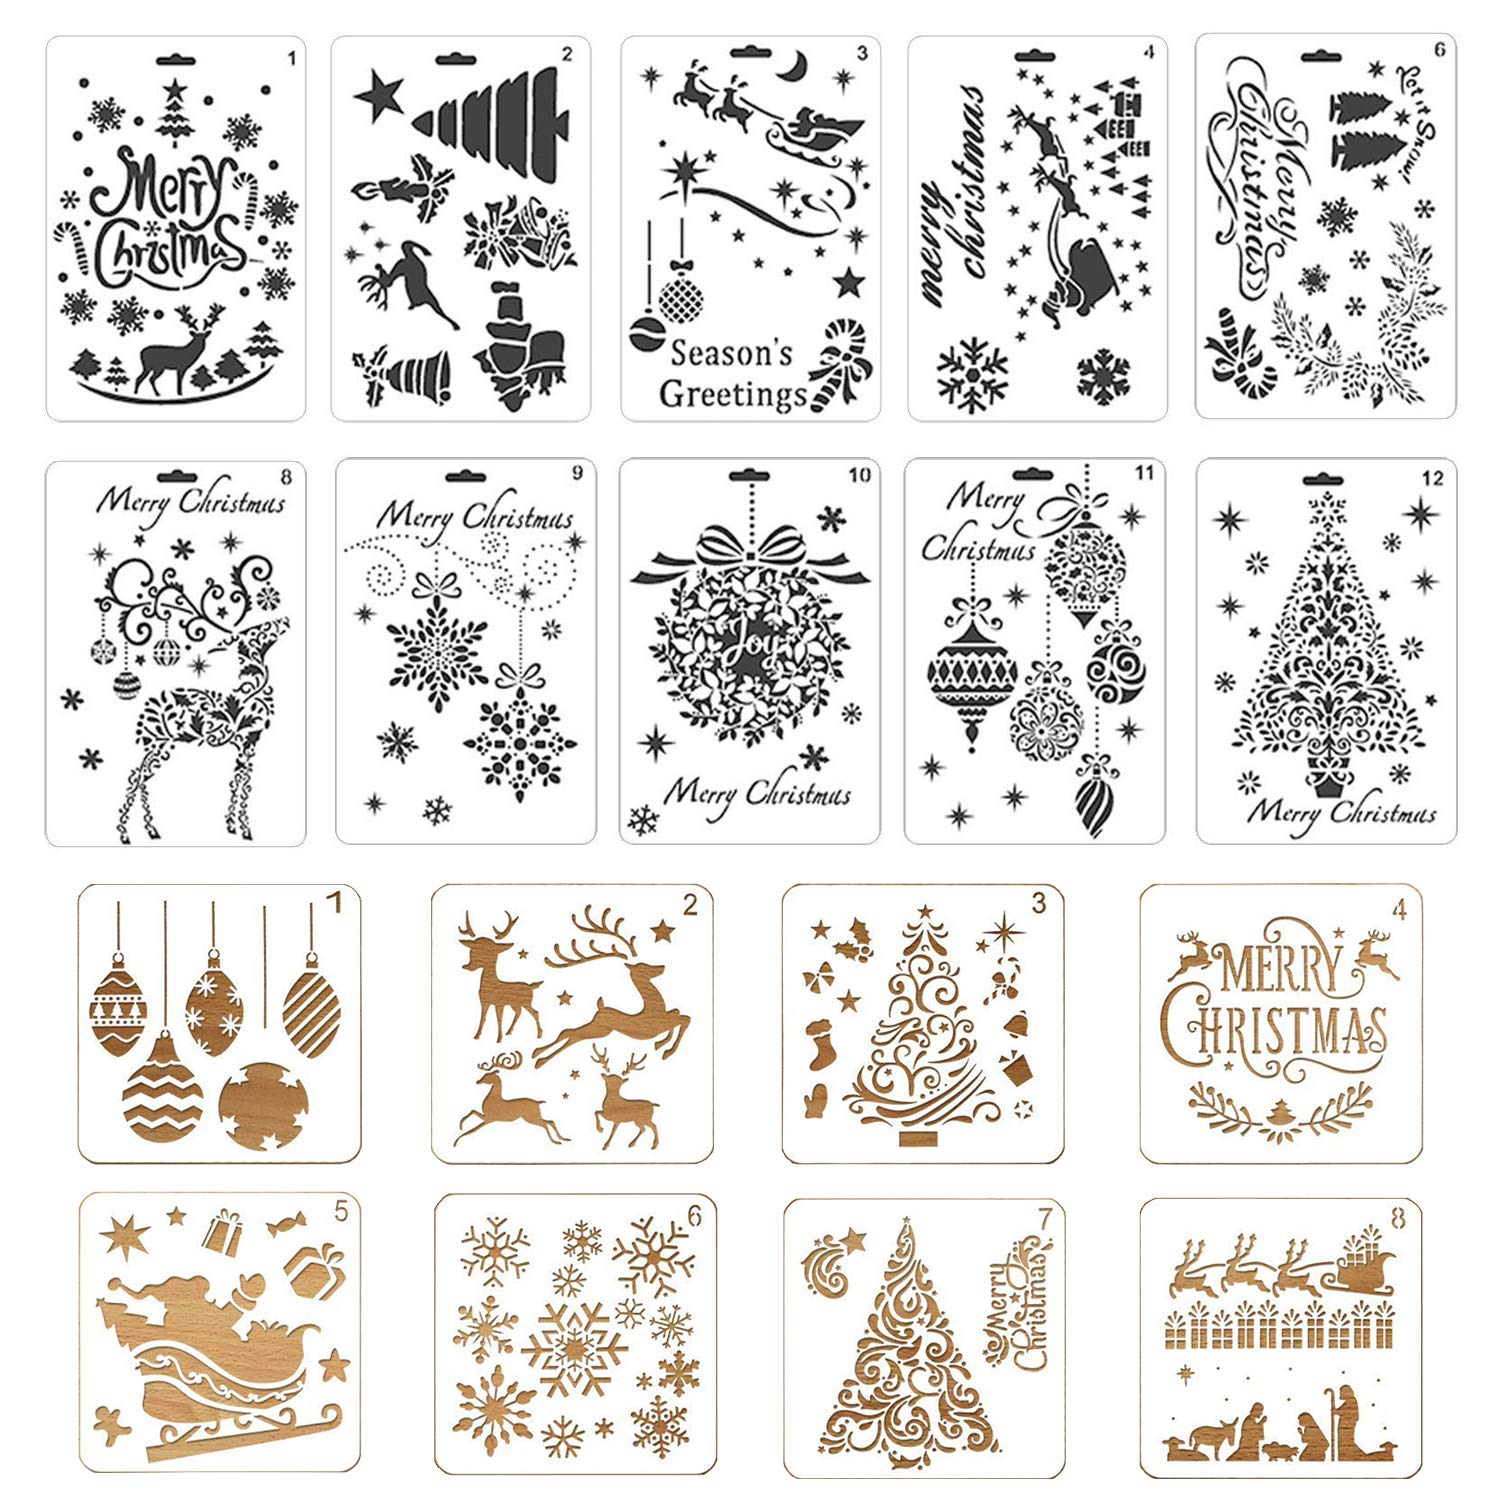 18 Pcs Christmas DIY Painting Drawing Stencils Journal Template Reusable Plastic Craft Stencils Santa Claus Christmas Tree for Gift Card Wood Window Notebook Scrapbook Xmas DIY Decoration Taveky